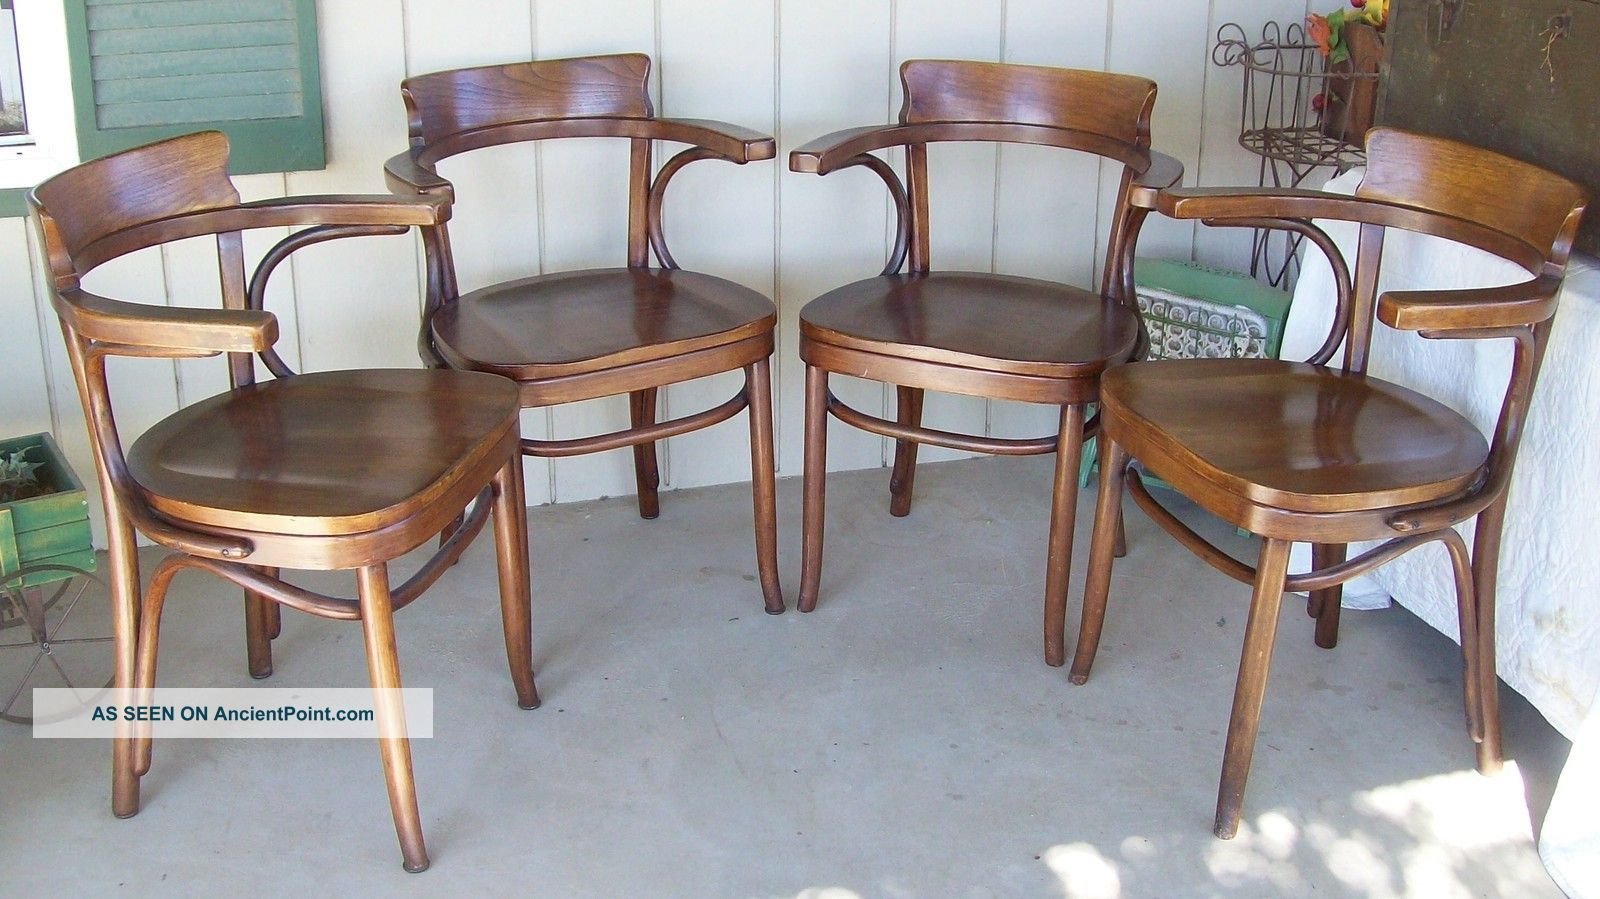 vintage bentwood chairs perfect sleep chair recliner thonet kohn mundus 1922 matched set of 4 1900 1950 photo